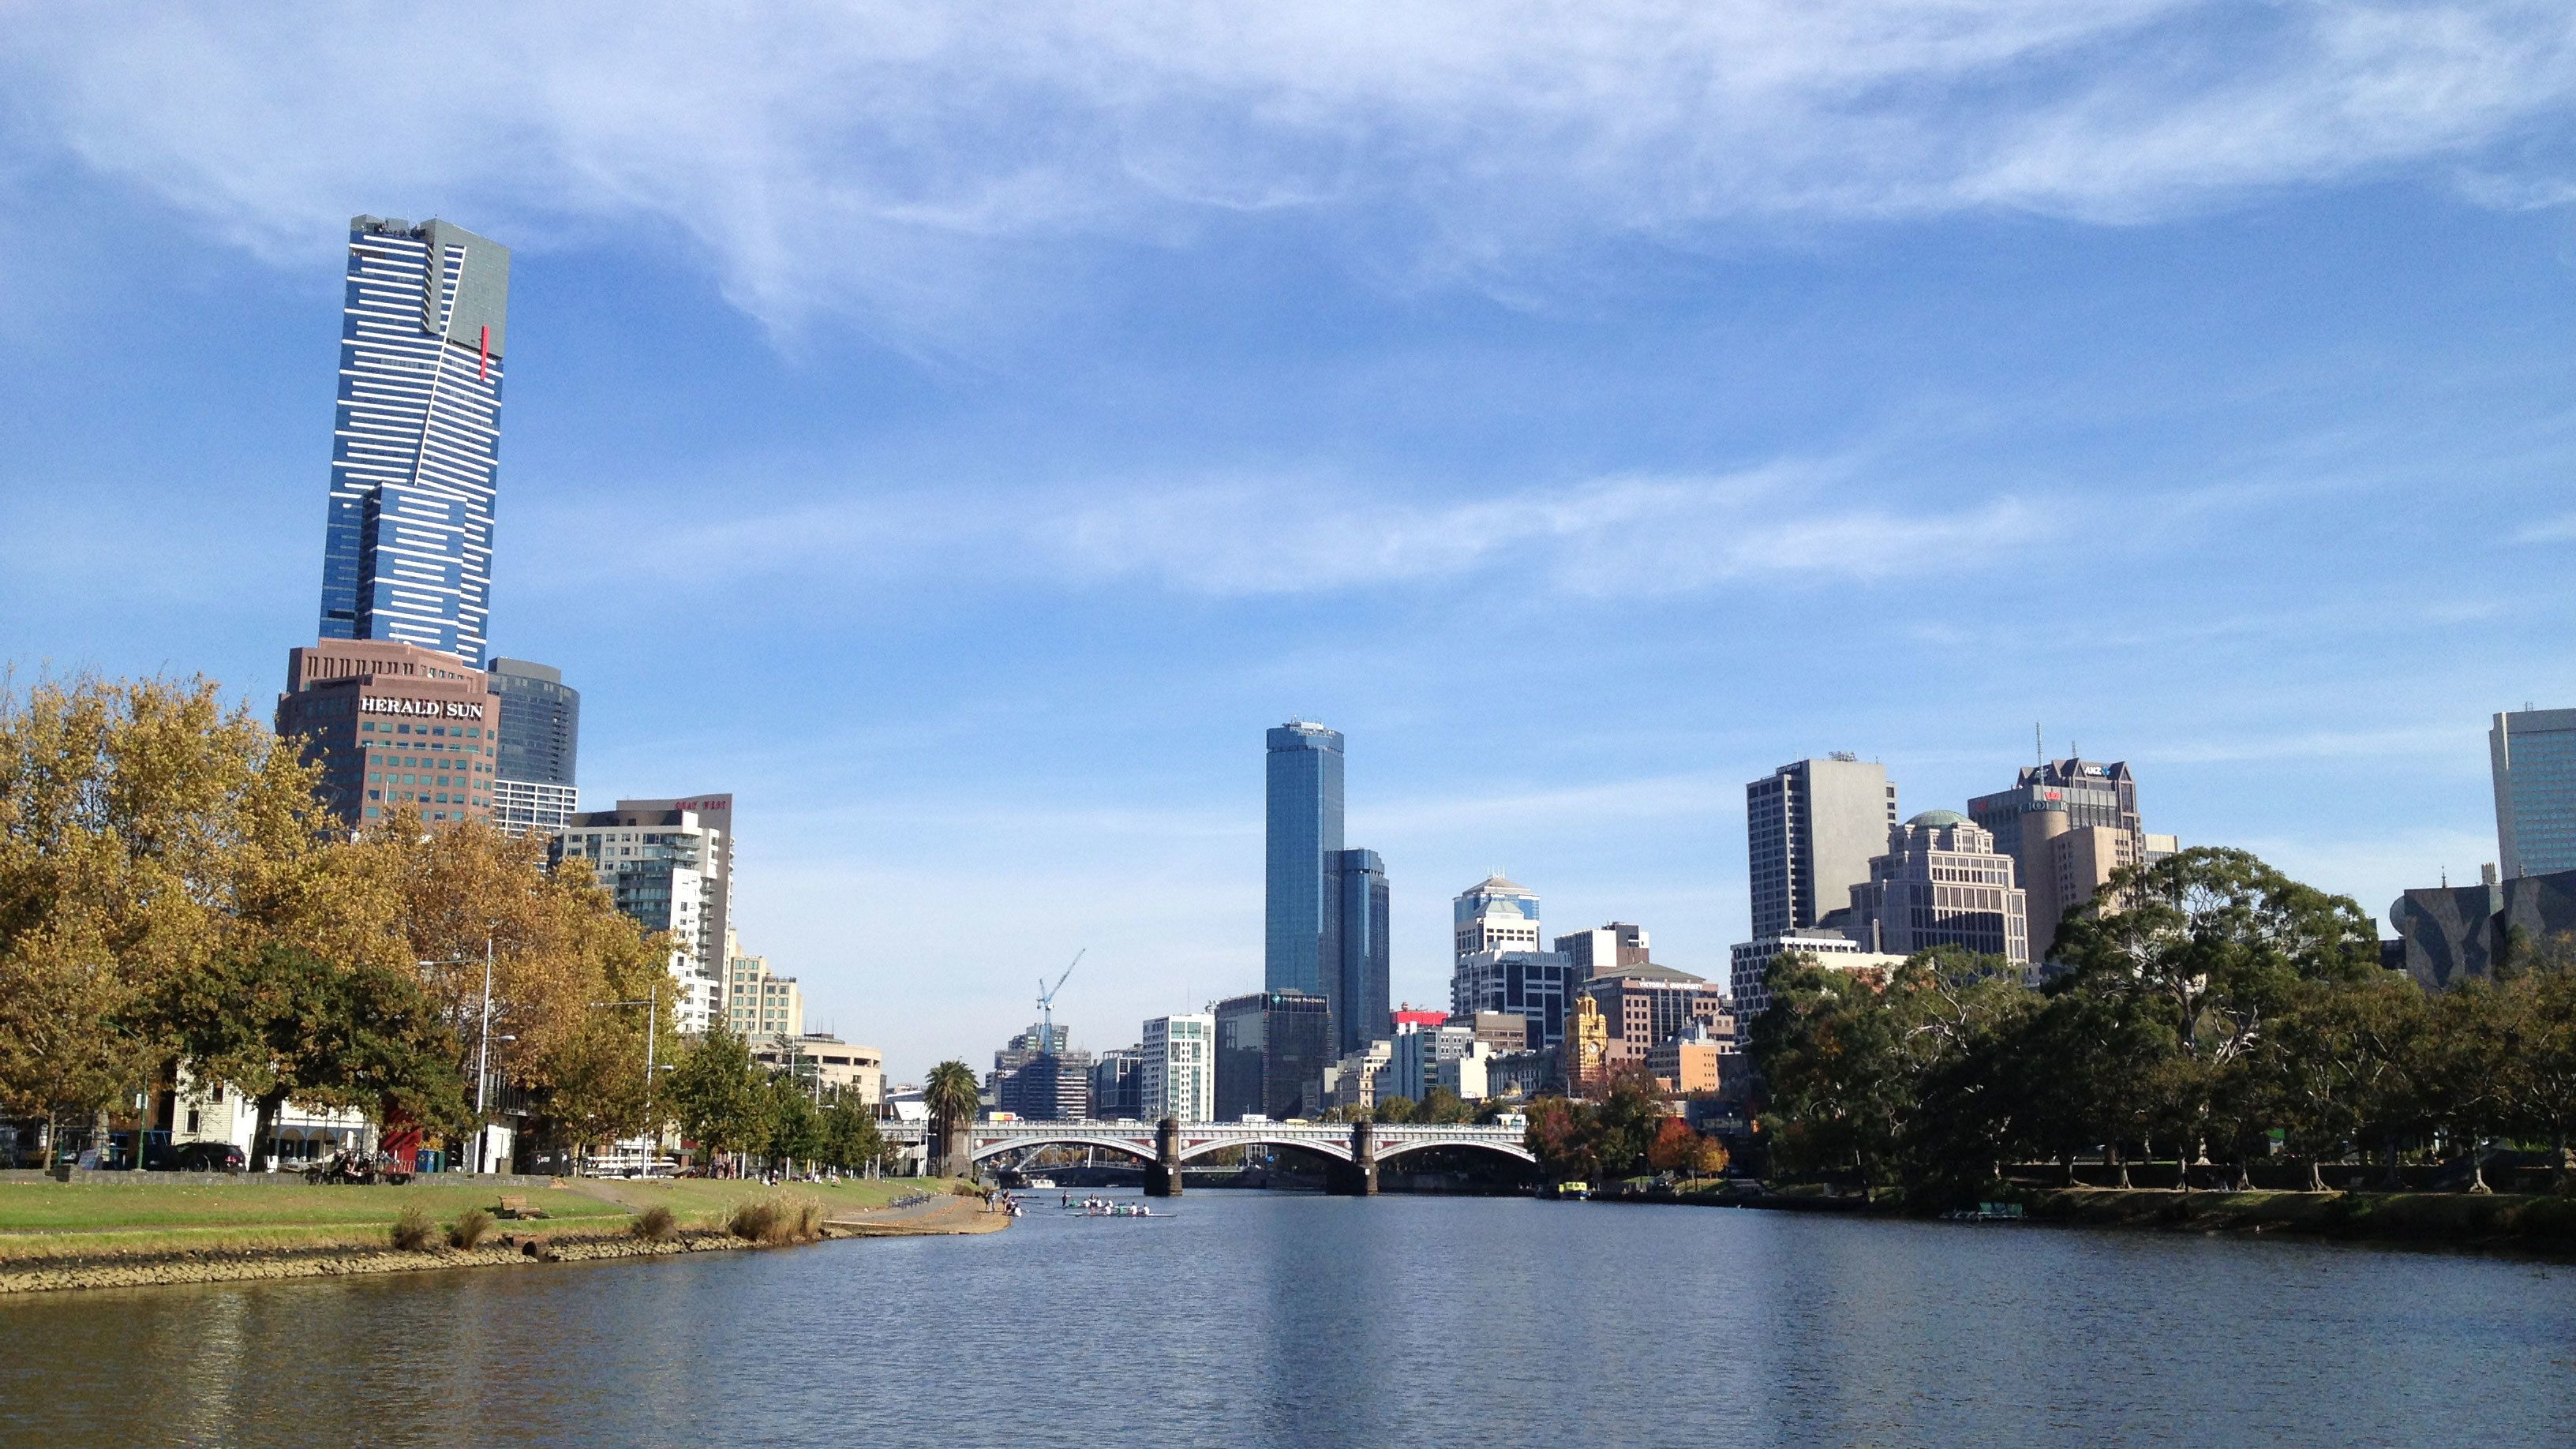 Yarra River with the city in the background in Melbourne